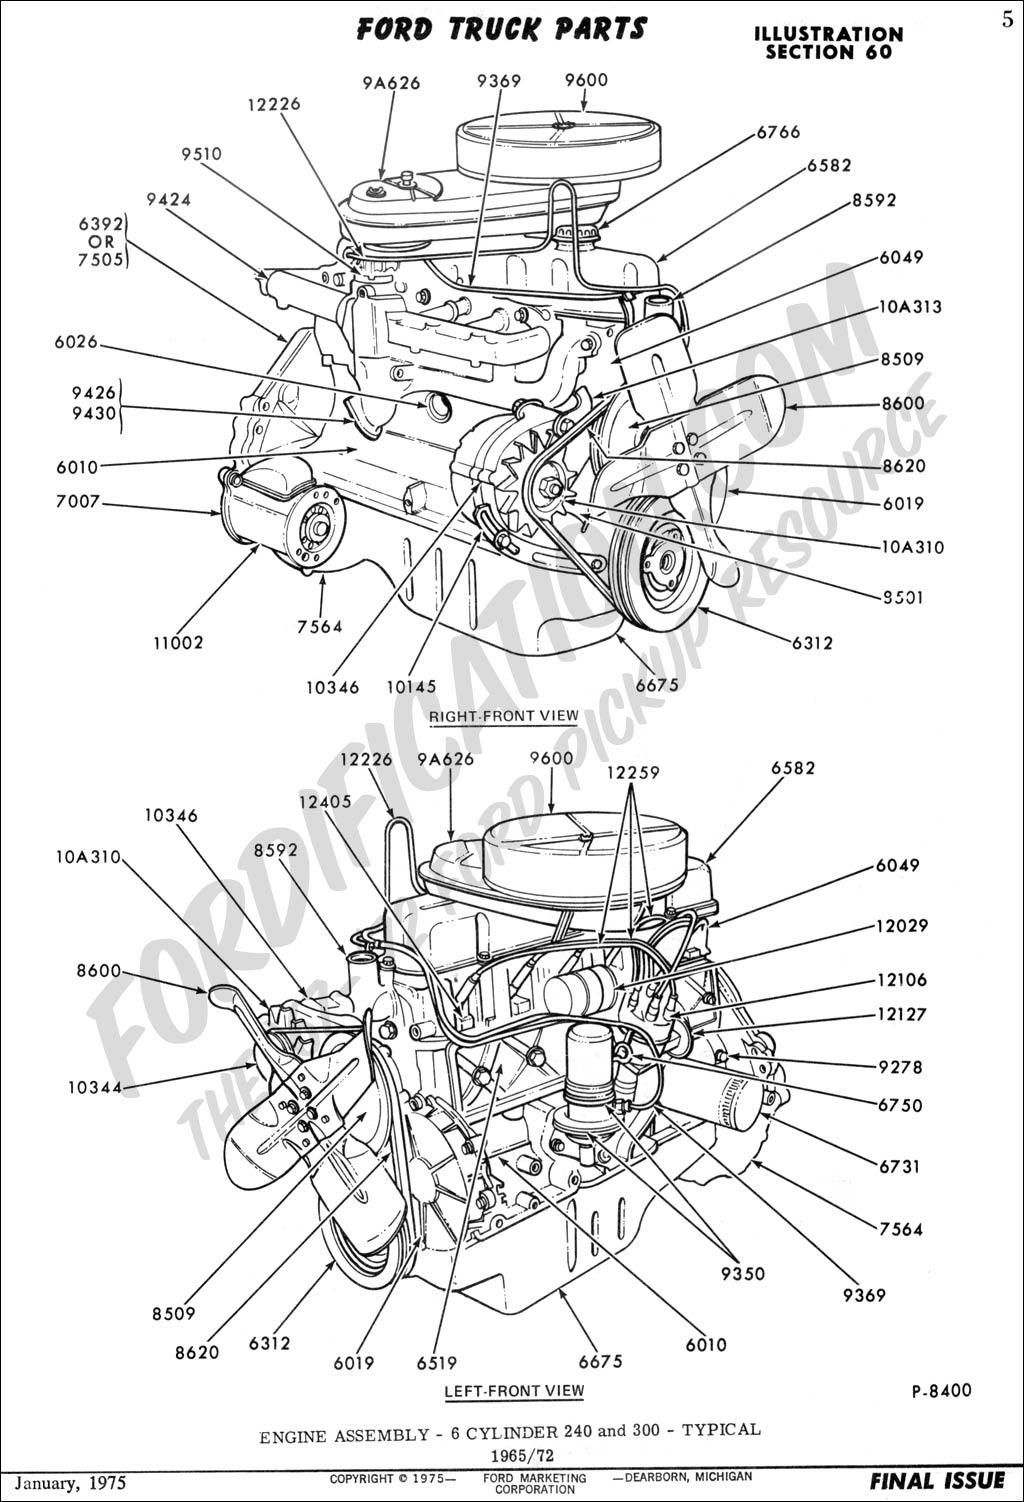 Oil Pump Location And Replacement